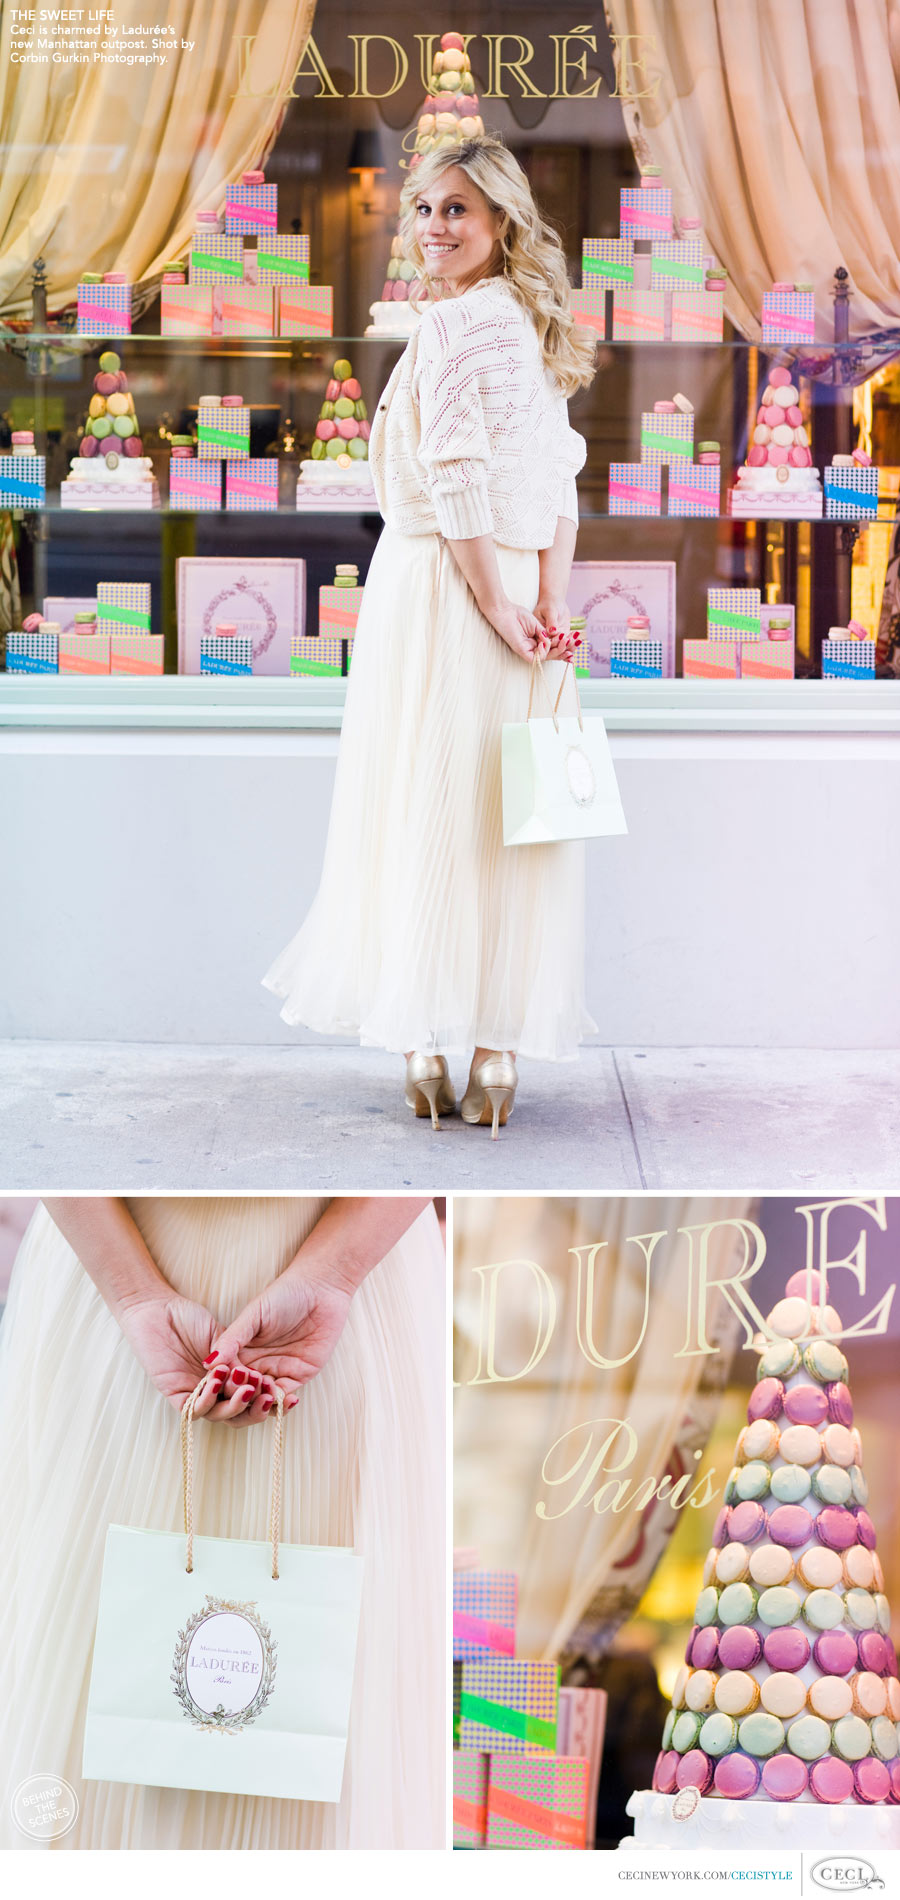 Ceci Johnson of Ceci New York - THE SWEET LIFE: Ceci looks on in delight at Ladurée's charming new Manhattan outpost. Shot by Corbin Gurkin Photography.